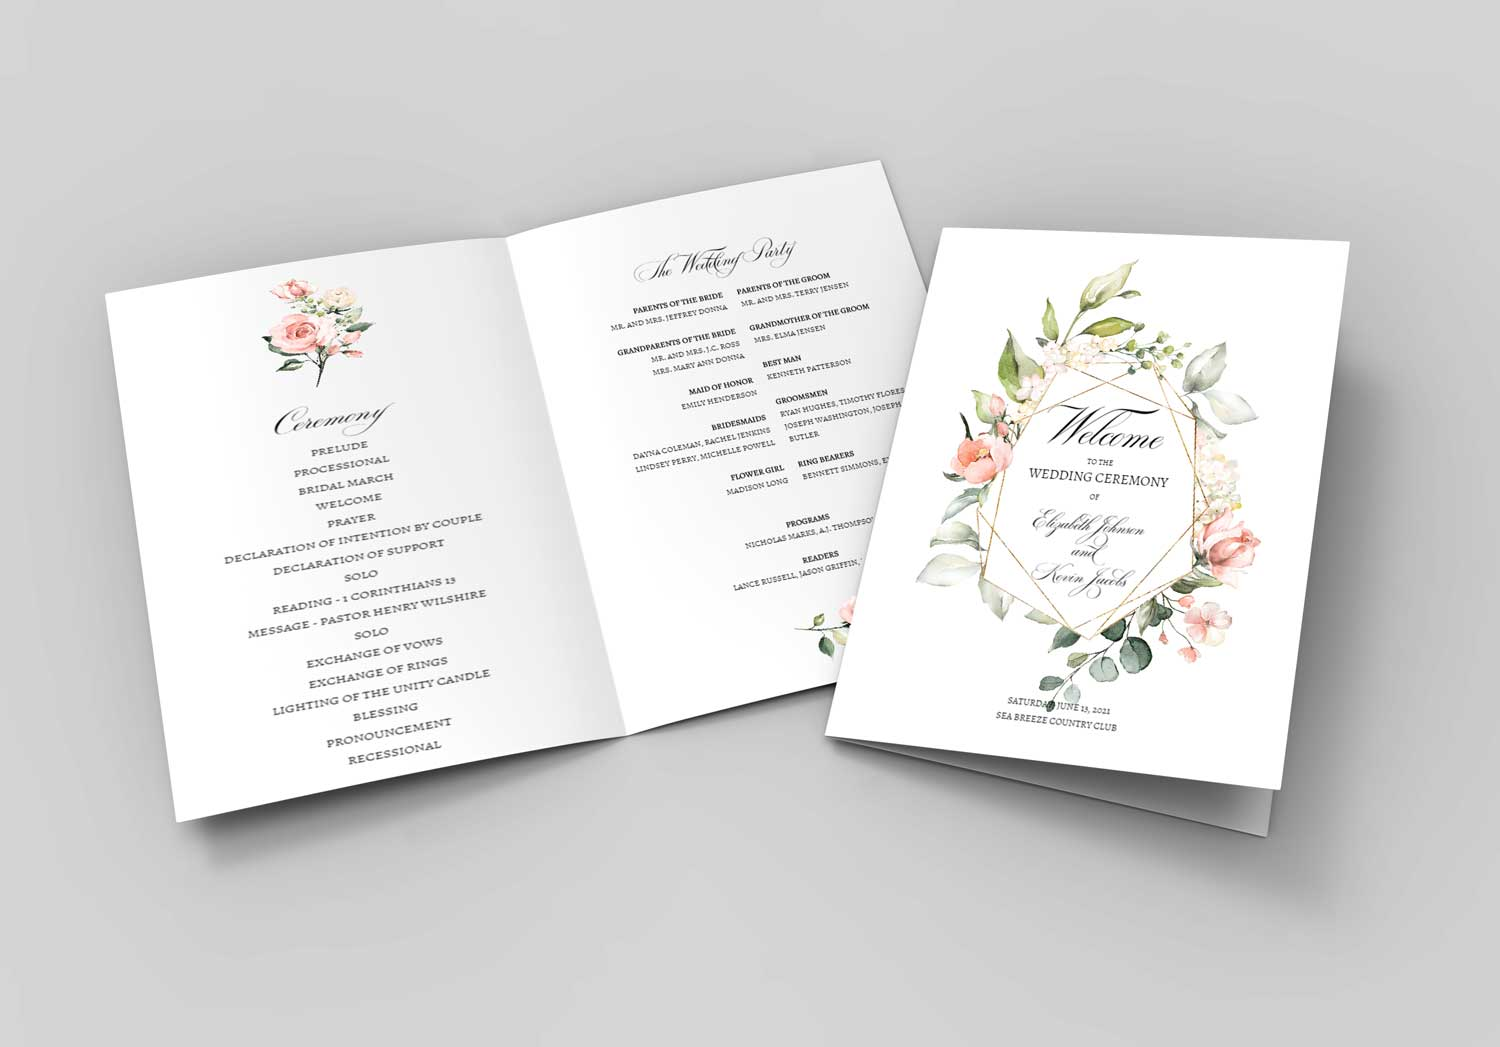 blush-bouquet-geometric-border-wedding-program-booklet-2